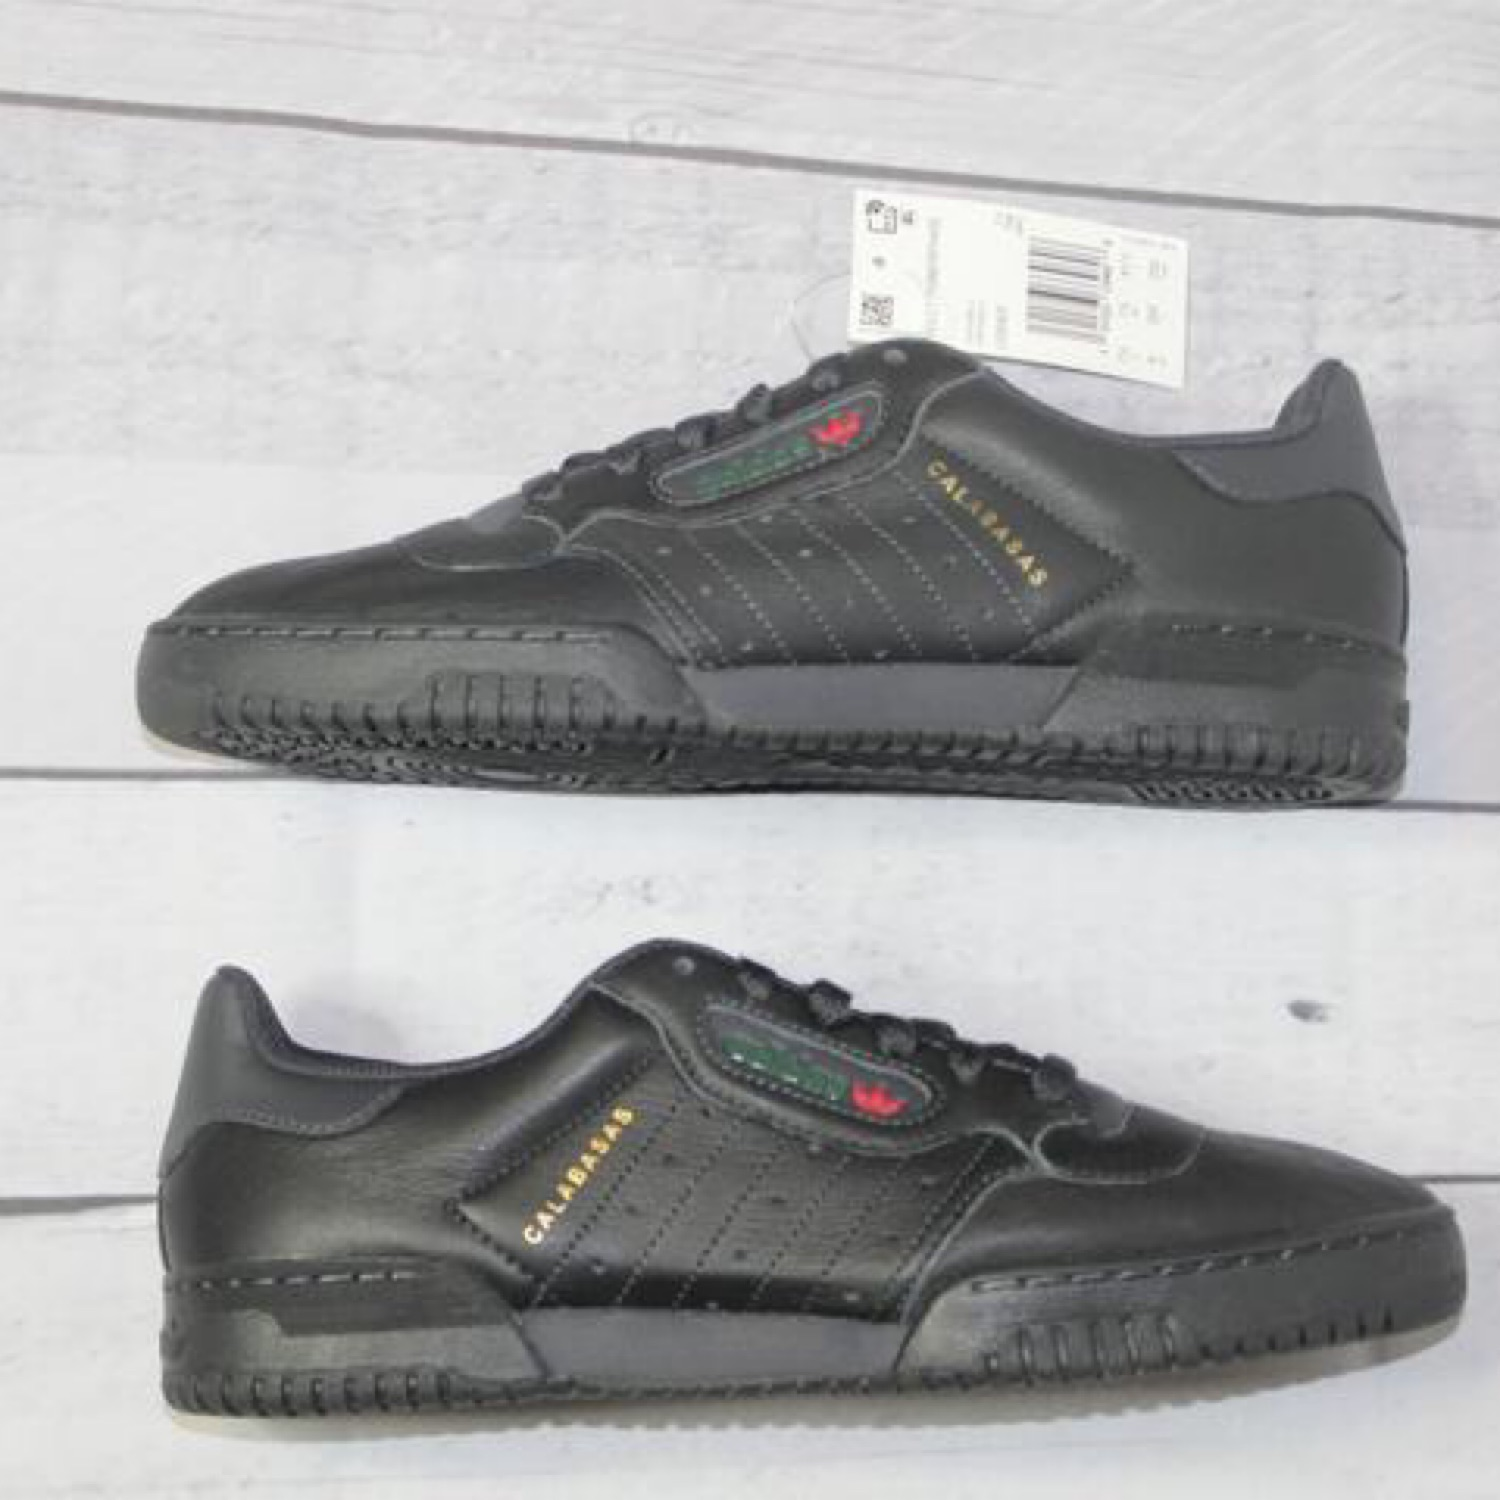 7b117404d7e13 Ds Adidas Yeezy Powerphase Black